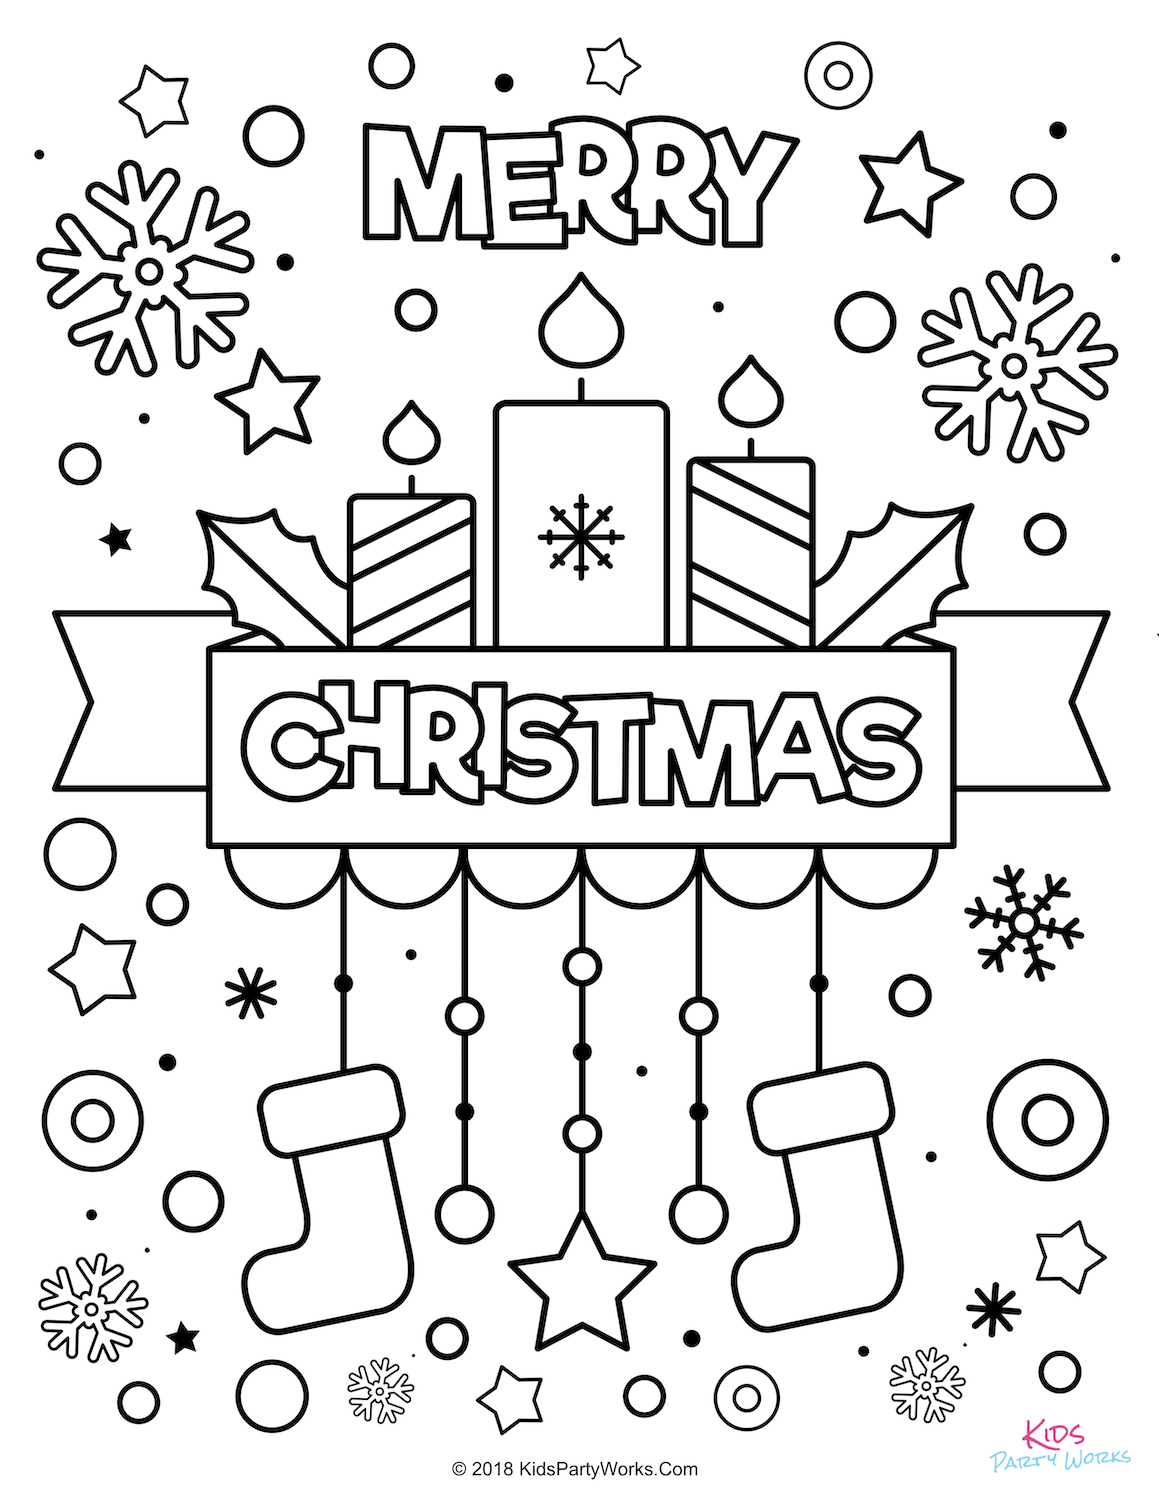 christmas coloring to print merry trace pad art 9x12 construction paper kids thanksgiving coloring pages Christmas Coloring Page To Print